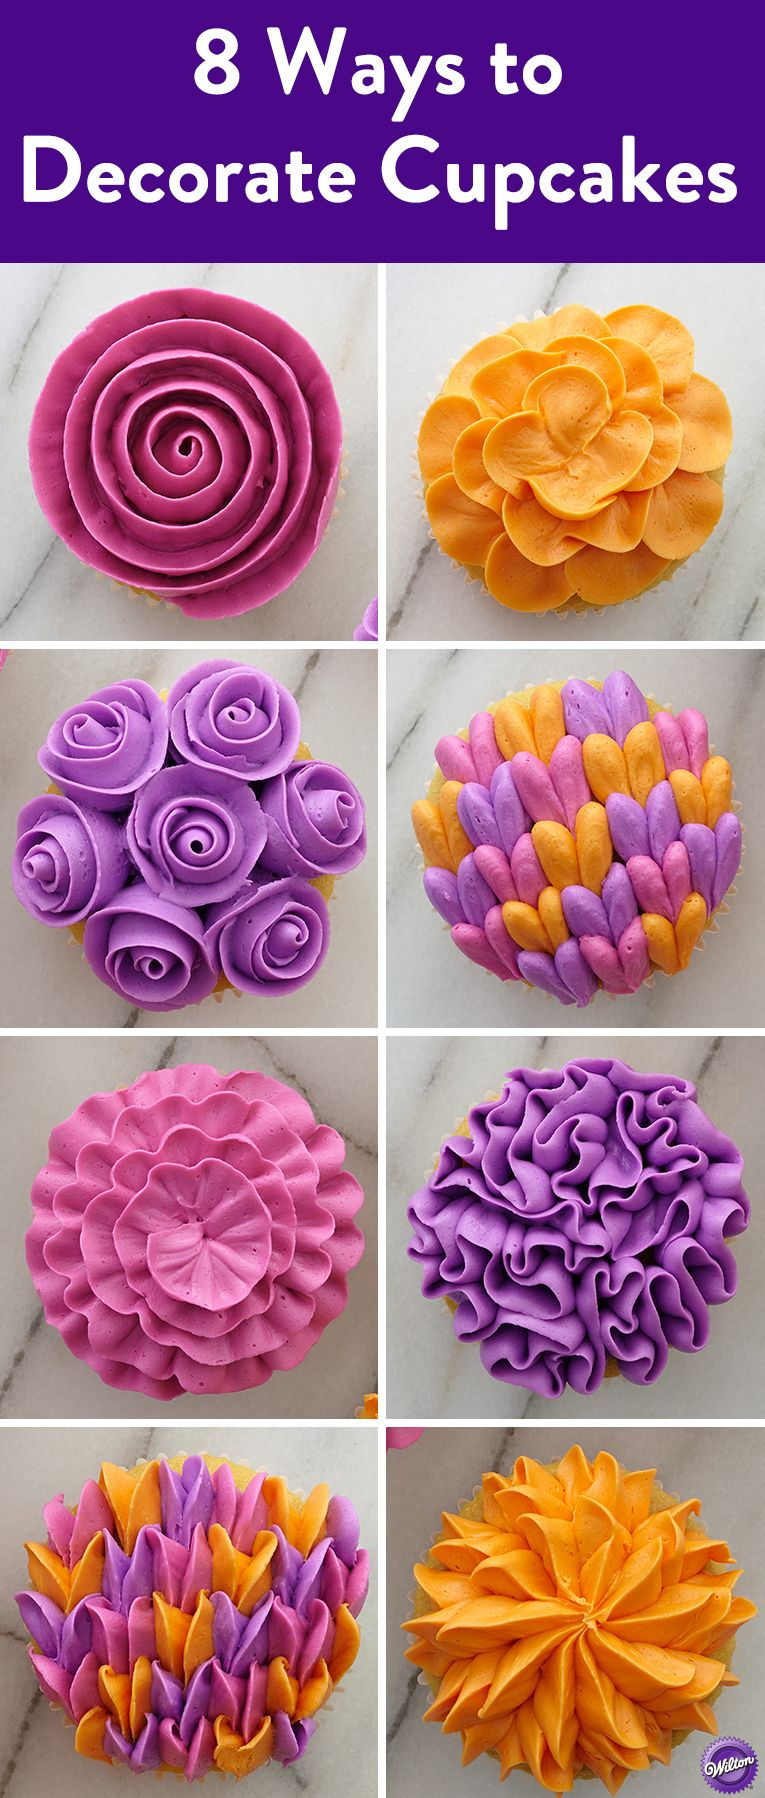 Flower Gallery Cupcakes Cakes Cupcakes And The Likes Pinterest